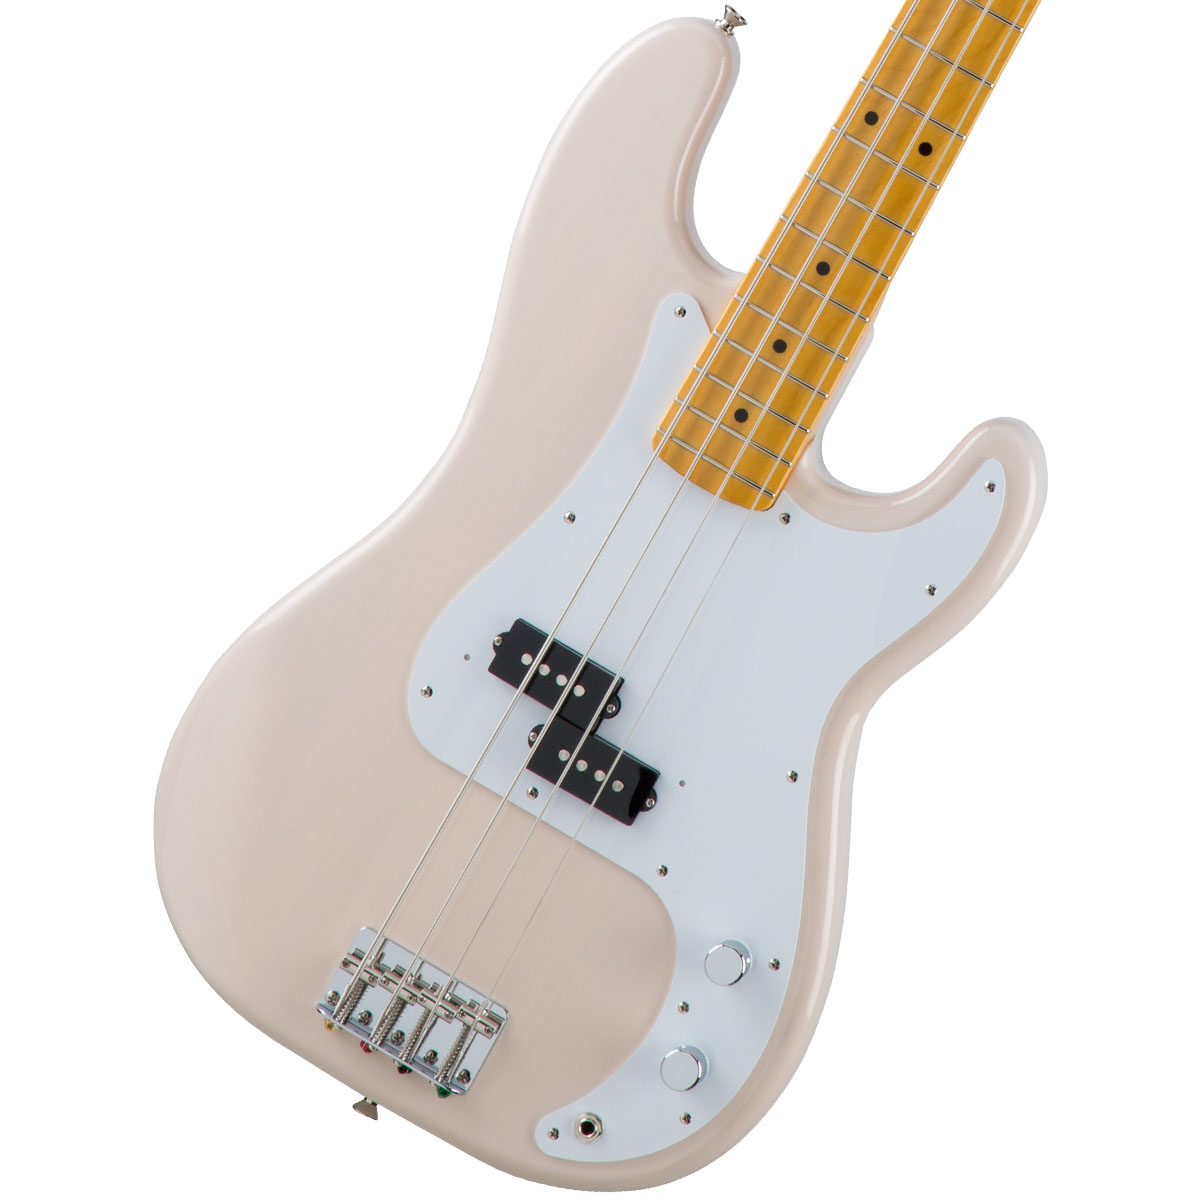 Fender / Made in Japan Traditional 50s Precision Bass Maple Fingerboard US Blonde 【お取り寄せ商品】《FENDERケアキットプレゼント/+671038200》《ベース弦1setプレゼント!/+811131900》